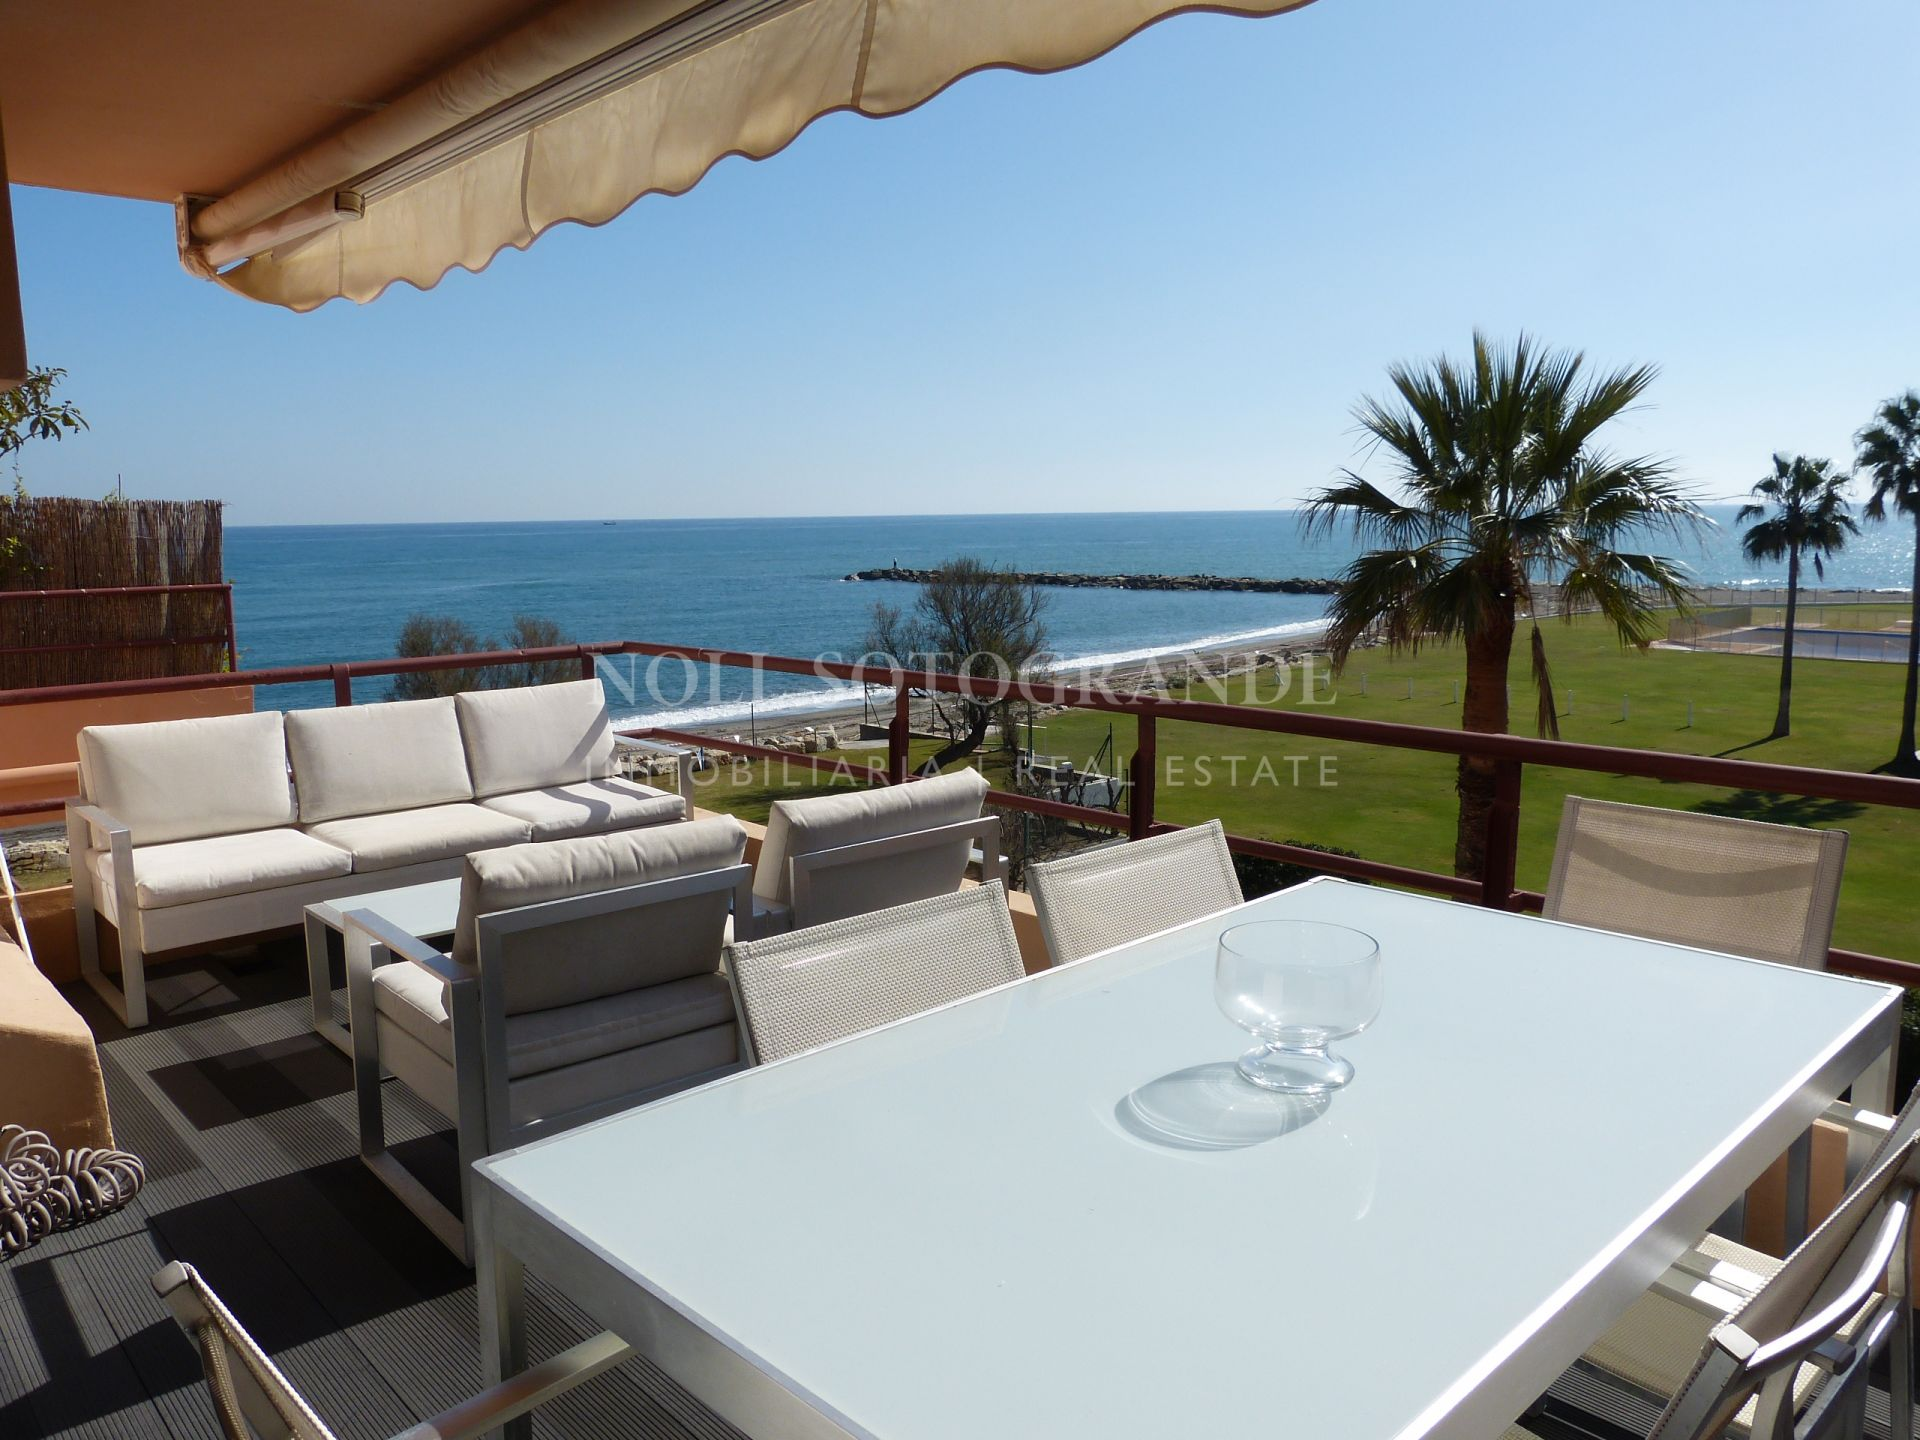 Sotogrande, beach apartment frontline with Gibraltar views